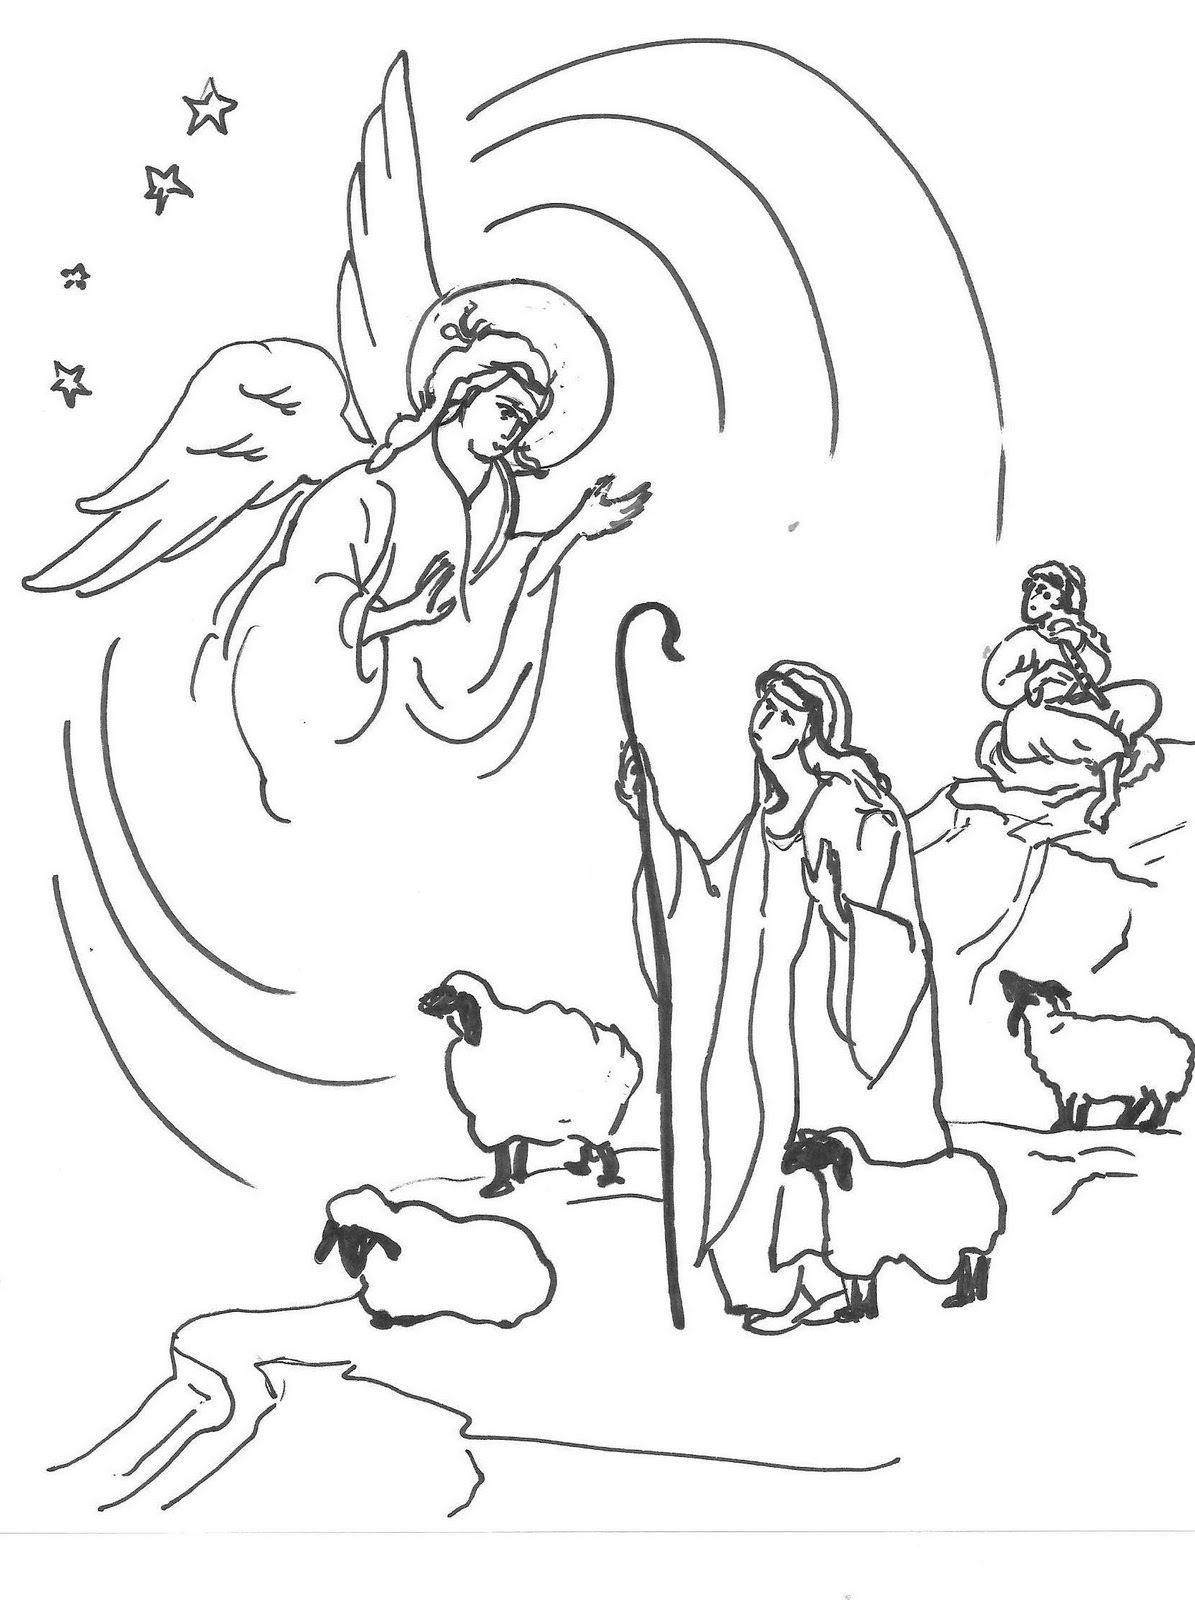 Christmas Shepherd Coloring Pages At Getdrawings Com Free For